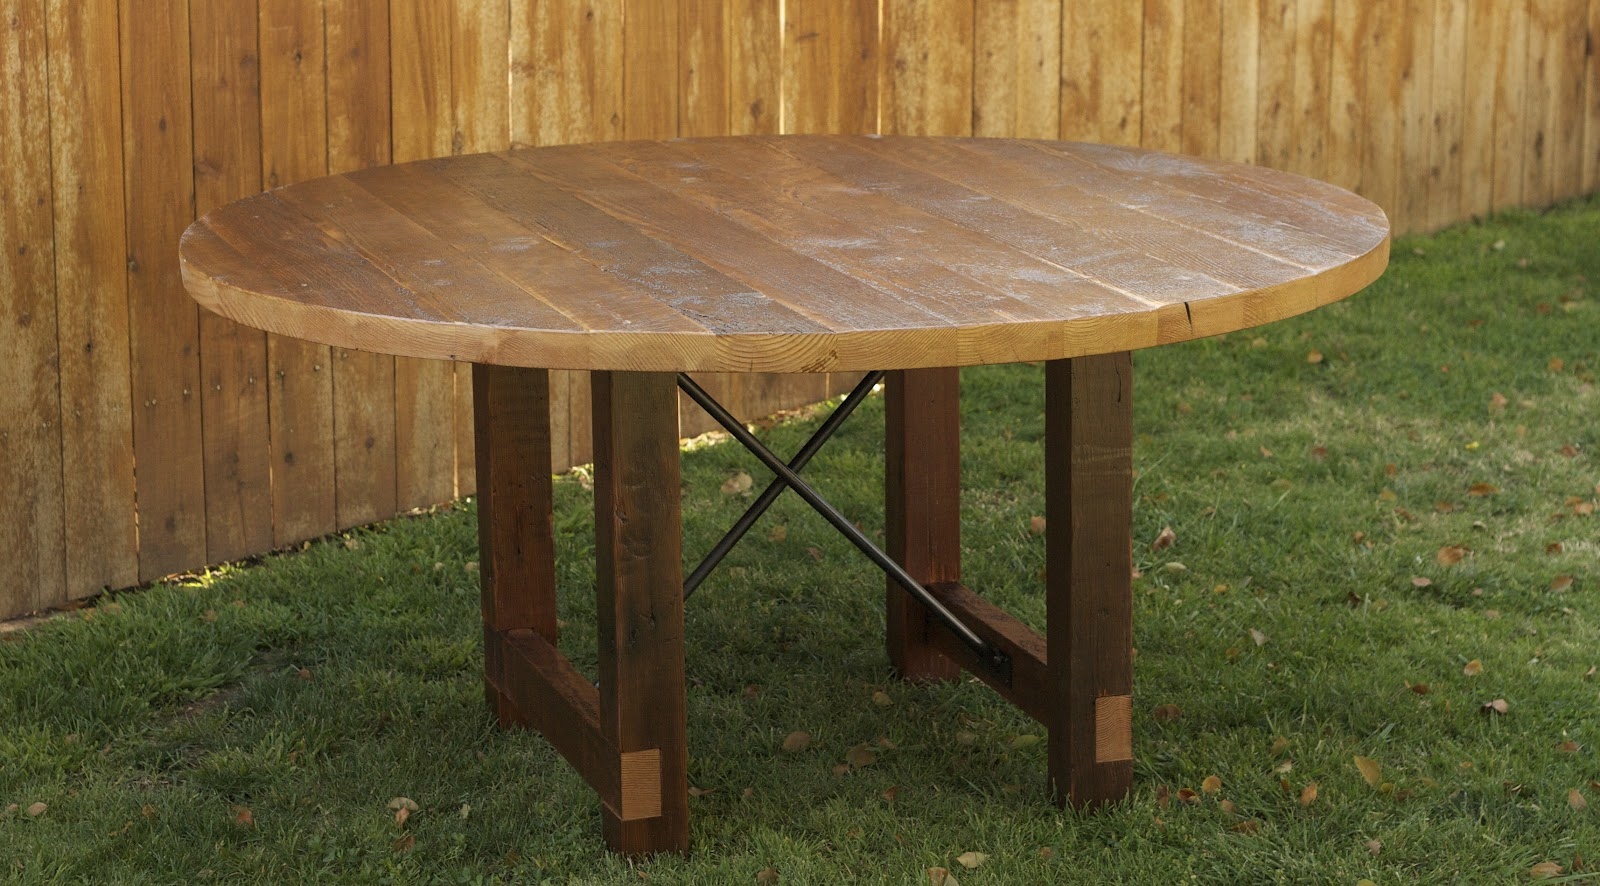 arbor exchange reclaimed wood furniture round dining table with metal x - Dining Table Round Wood